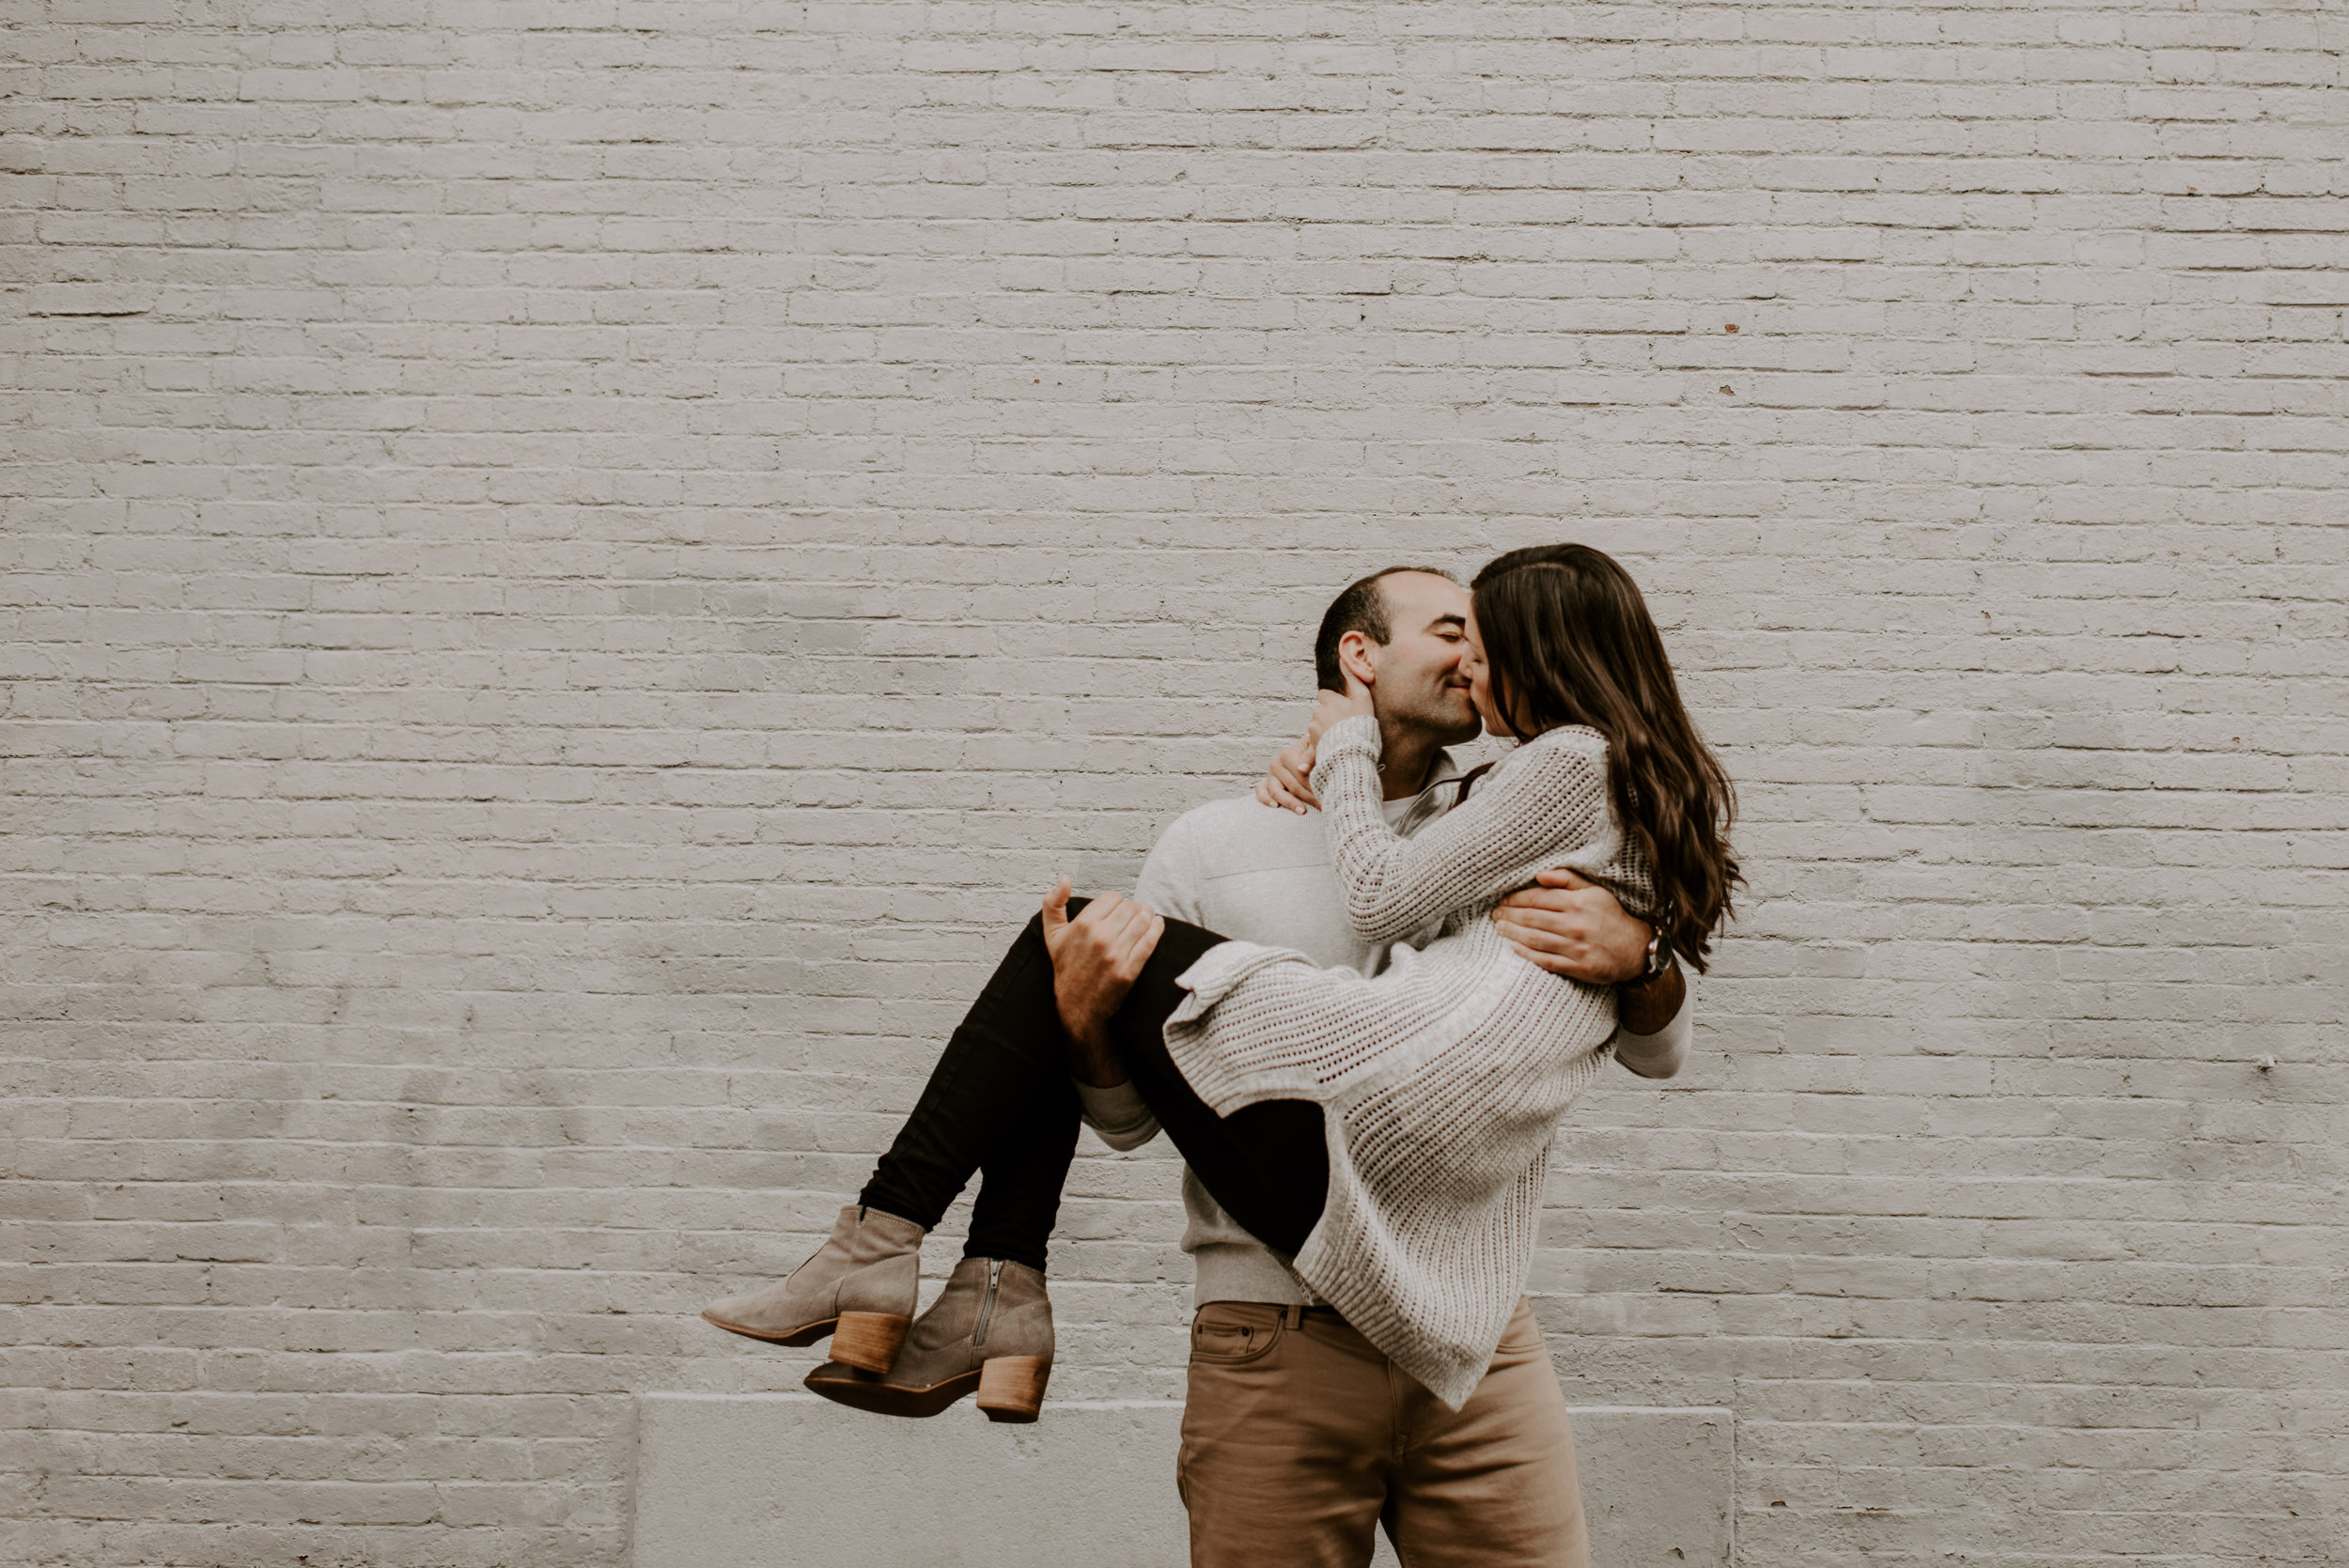 Dramatic and Moody Beacon Hill Engagement Session | Boston Wedding Photographer | Madeline Rose Photography Co.